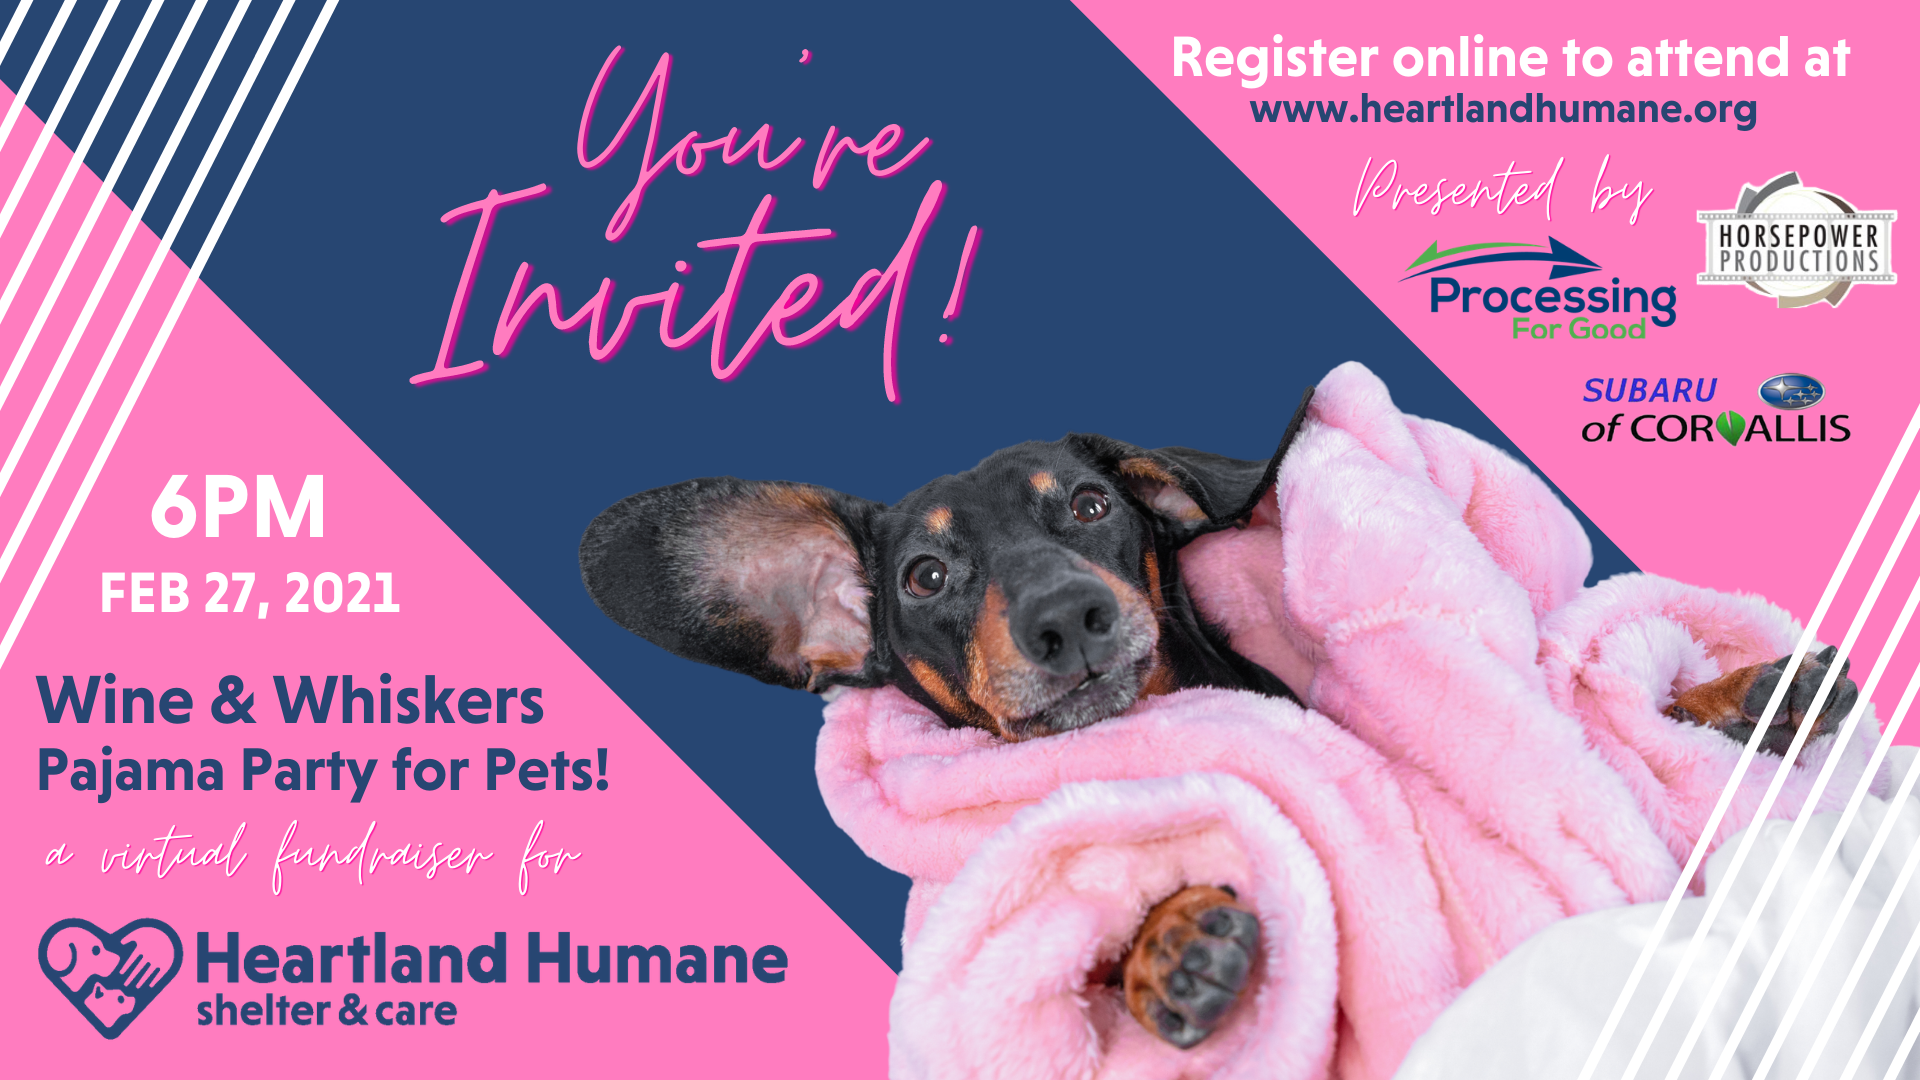 Link to Heartland Humane shelter & care